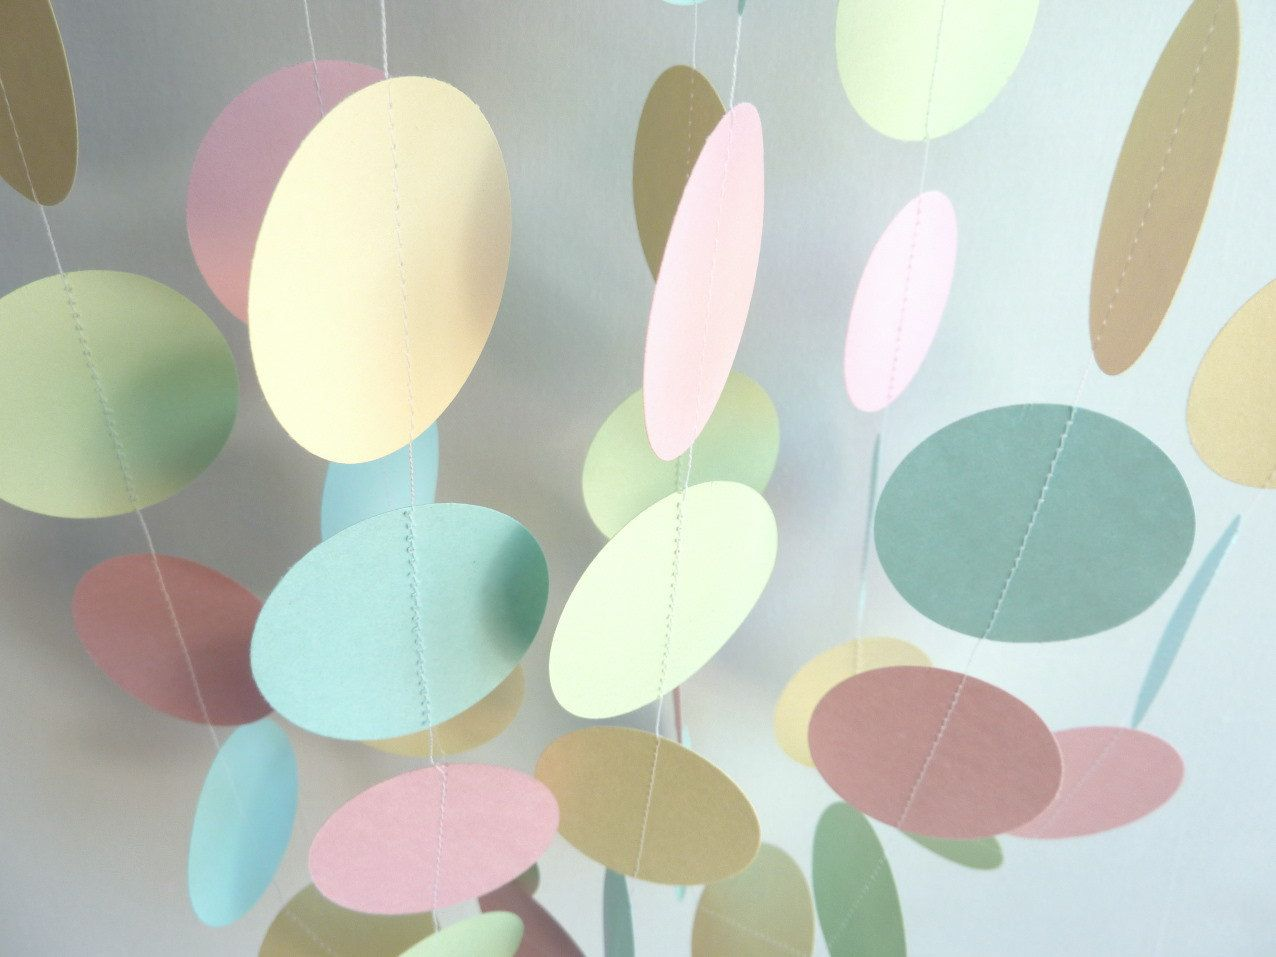 Best ideas about pastel nursery on pinterest nursery colours pastel - Baby Garland Pastel Pink Blue Green And Yellow Boy Or Girl